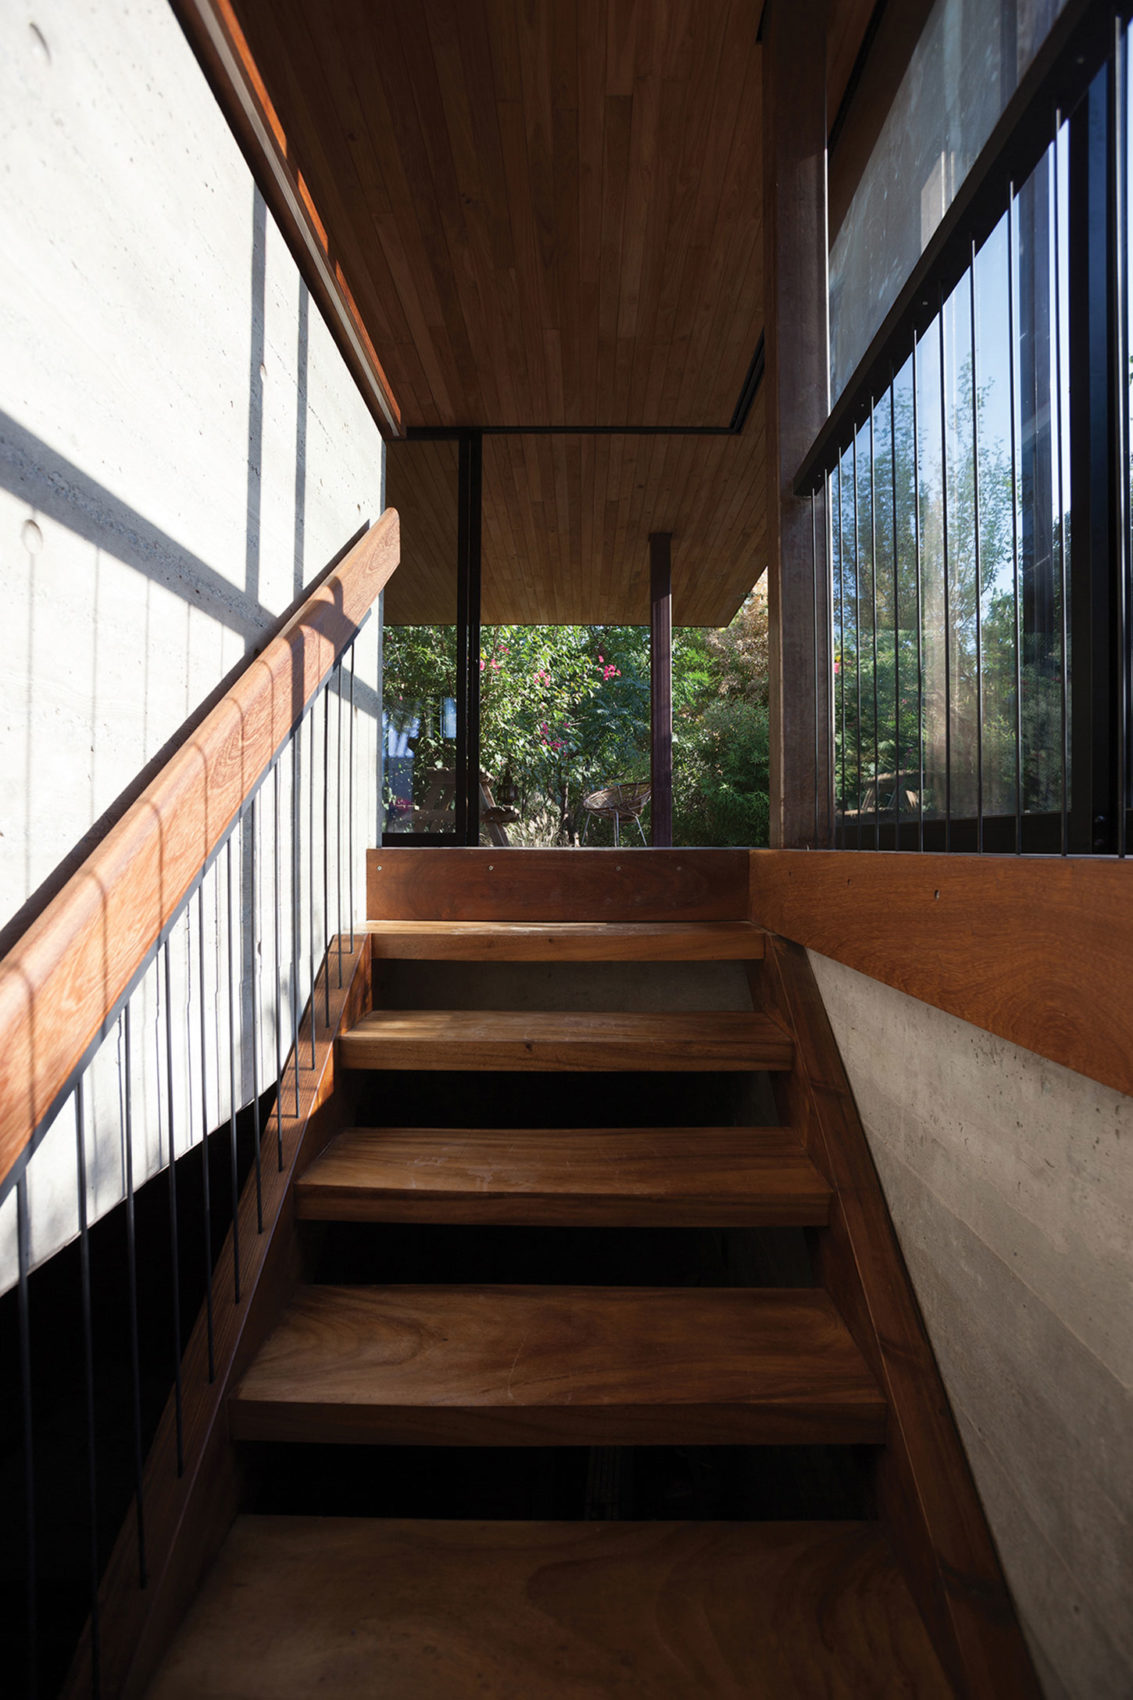 Pavilion at Arch's Residence by Kythreotis Arch (13)